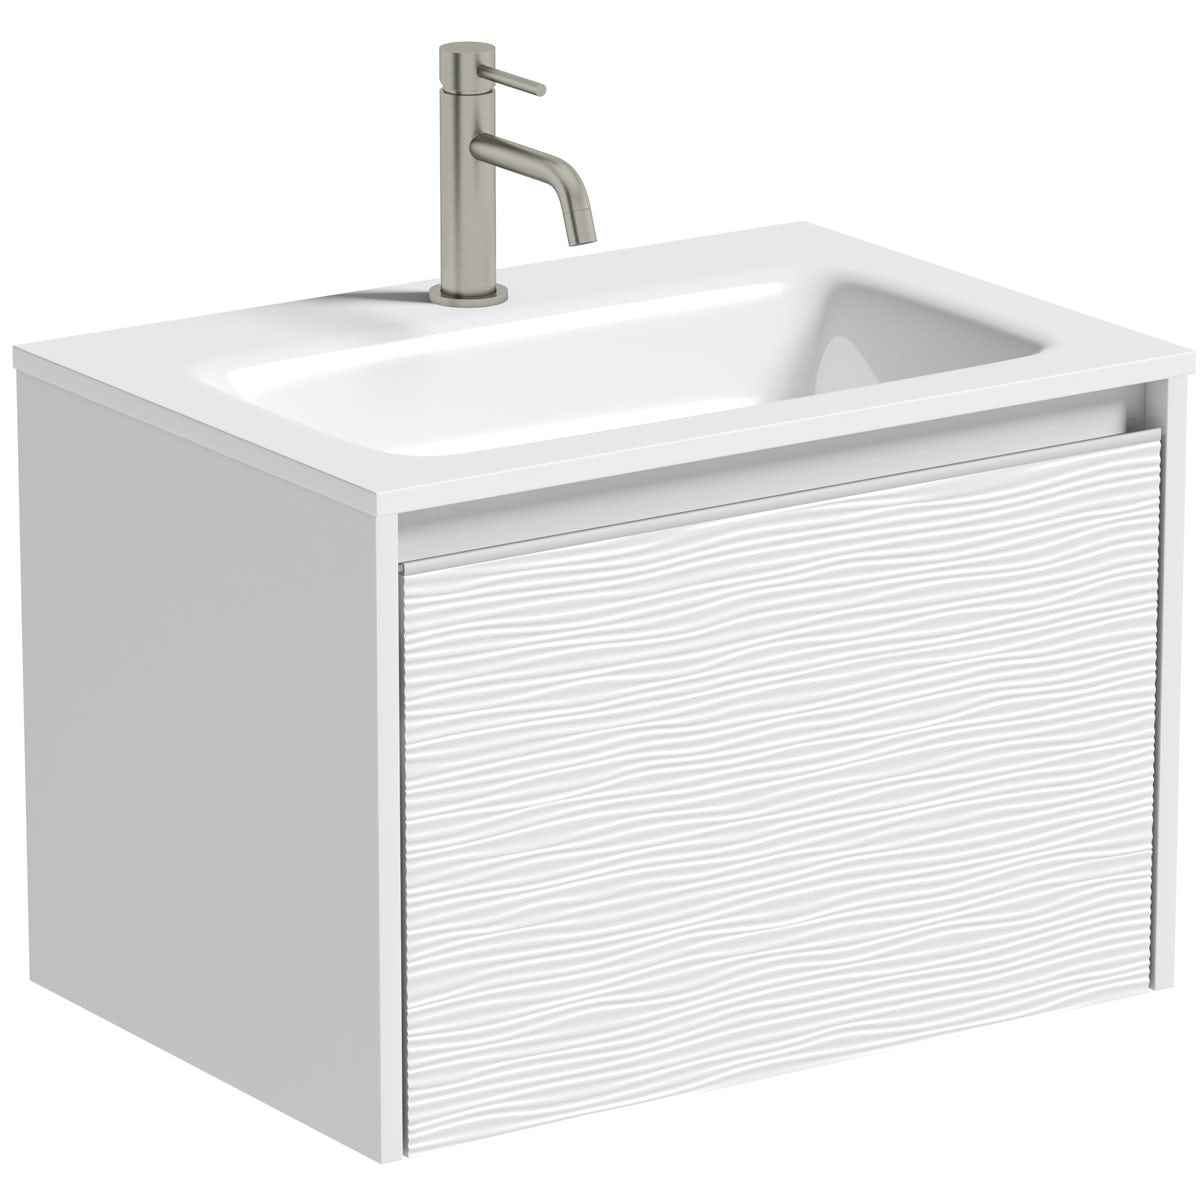 Mode Banks textured matt white wall hung vanity unit and basin 600mm